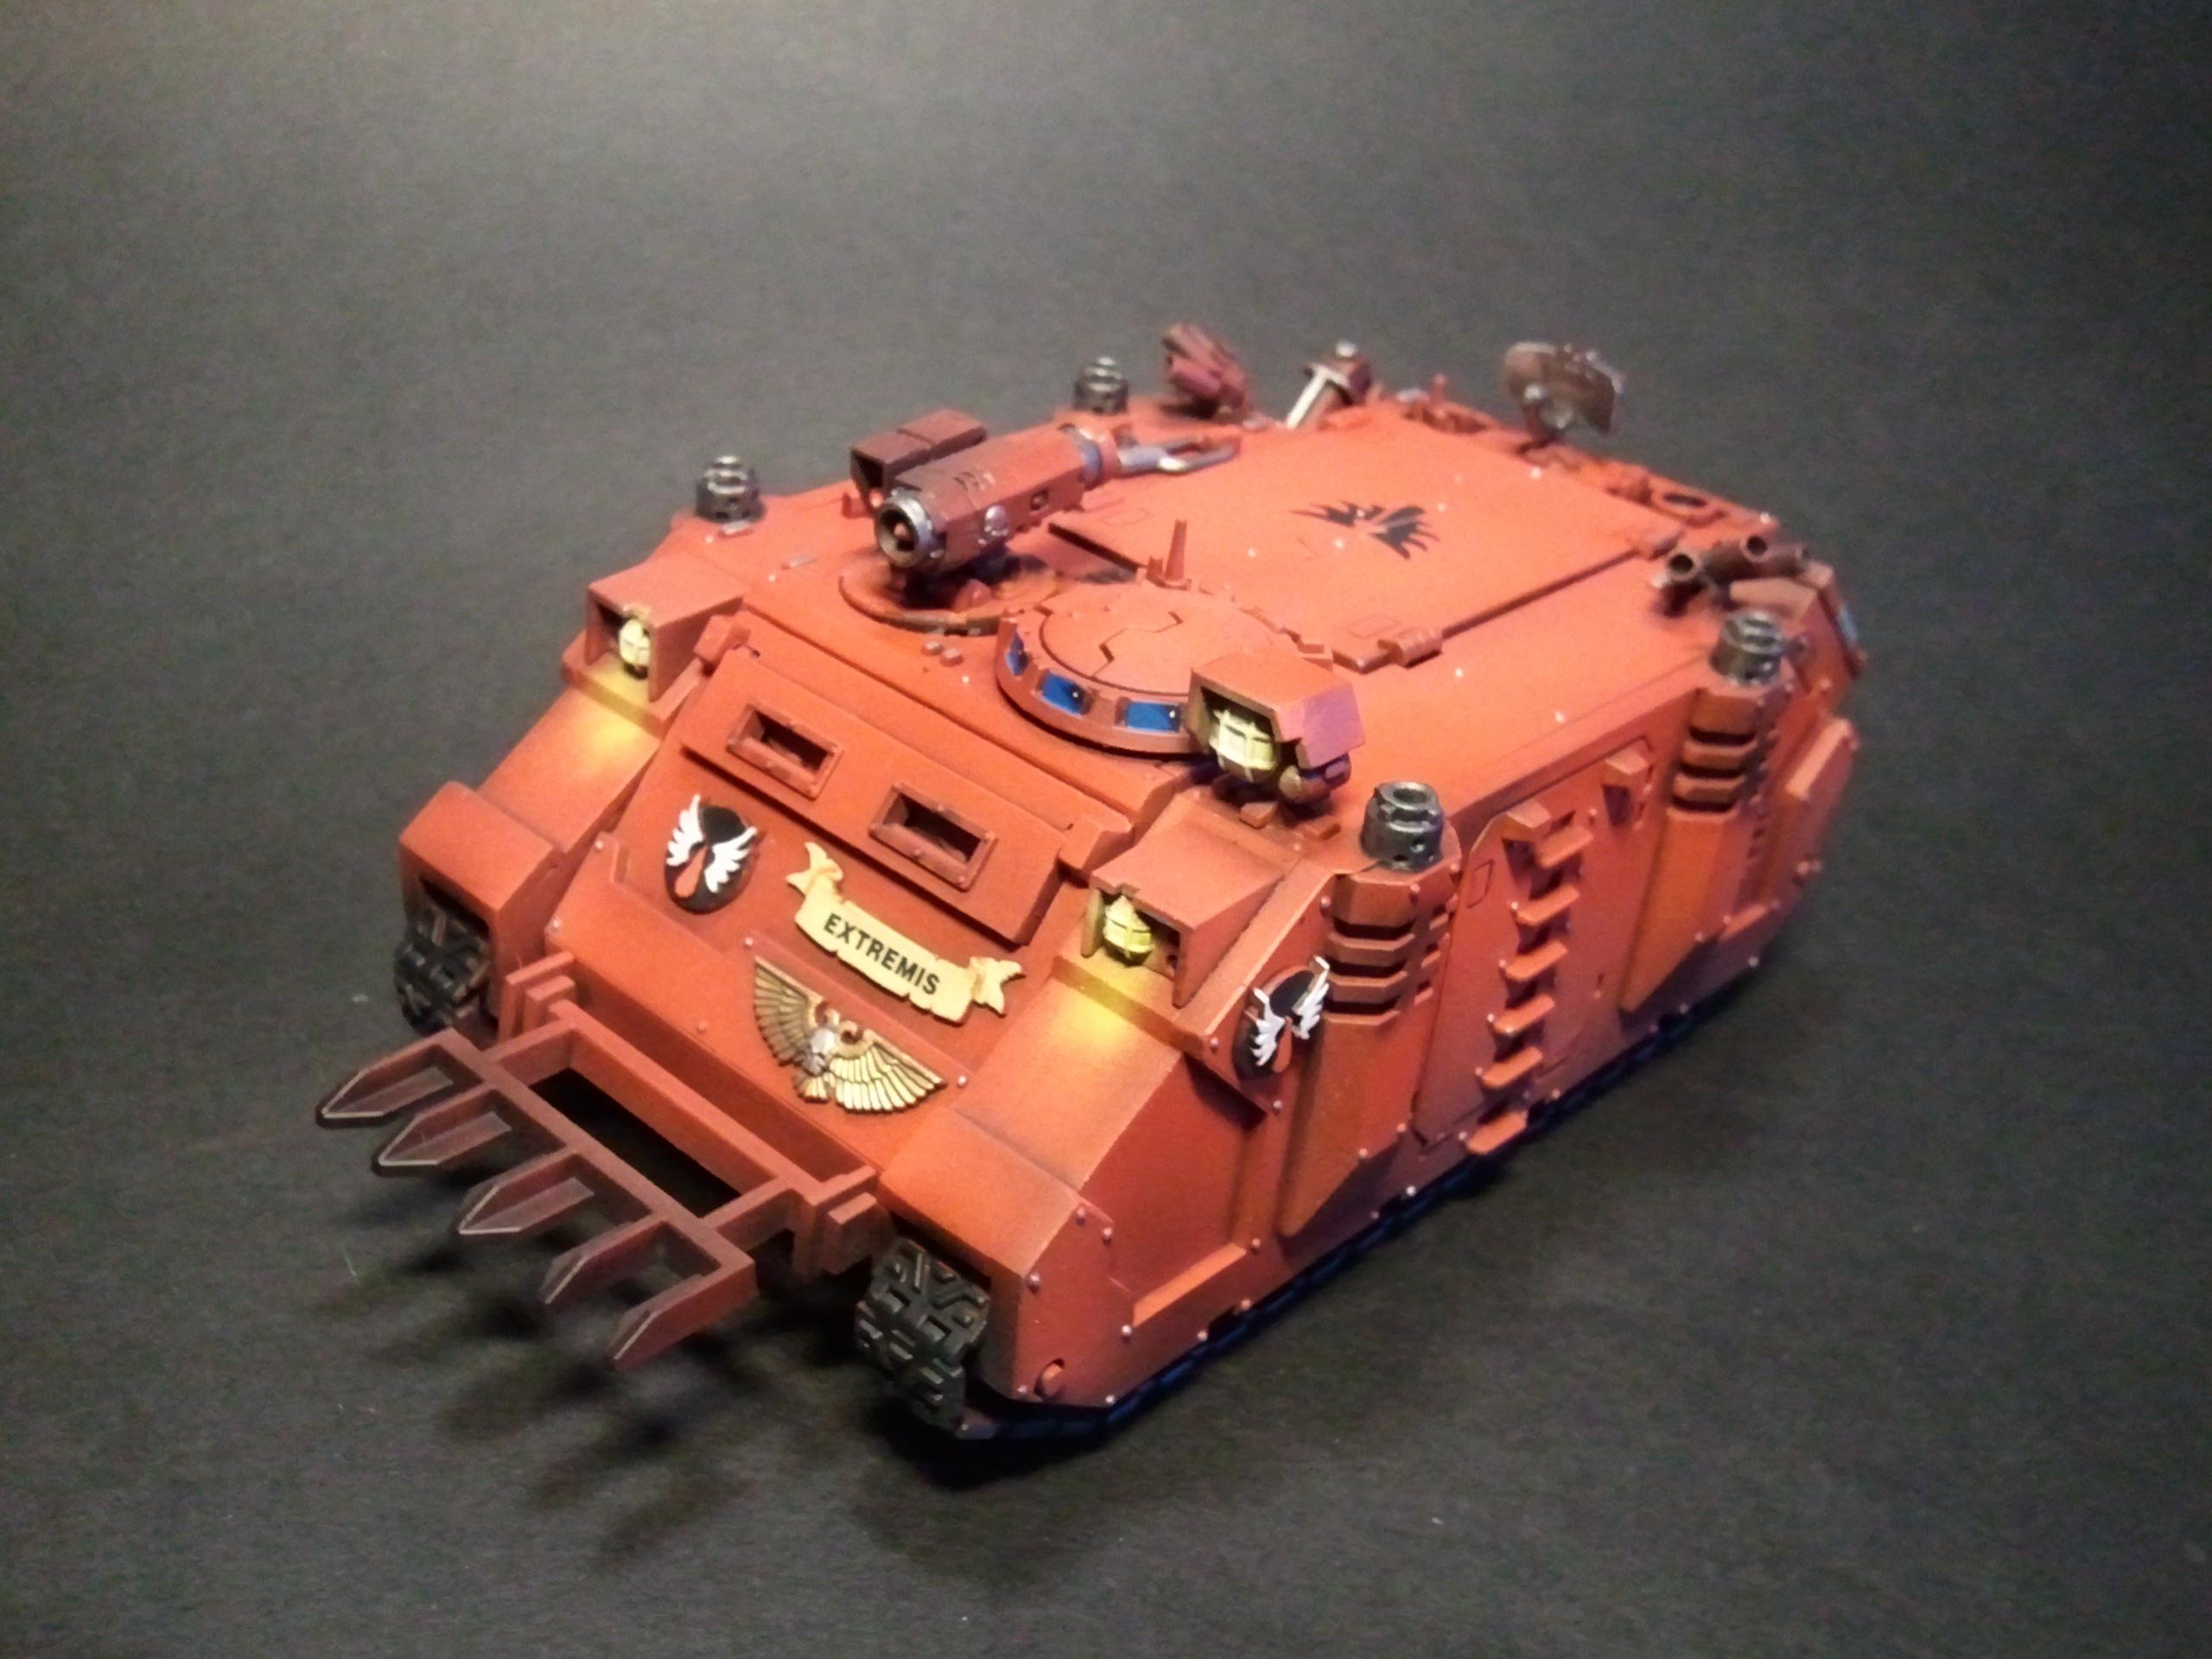 Blood Angels, Object Source Lighting, Rhino, Space Marines, Warhammer 40,000